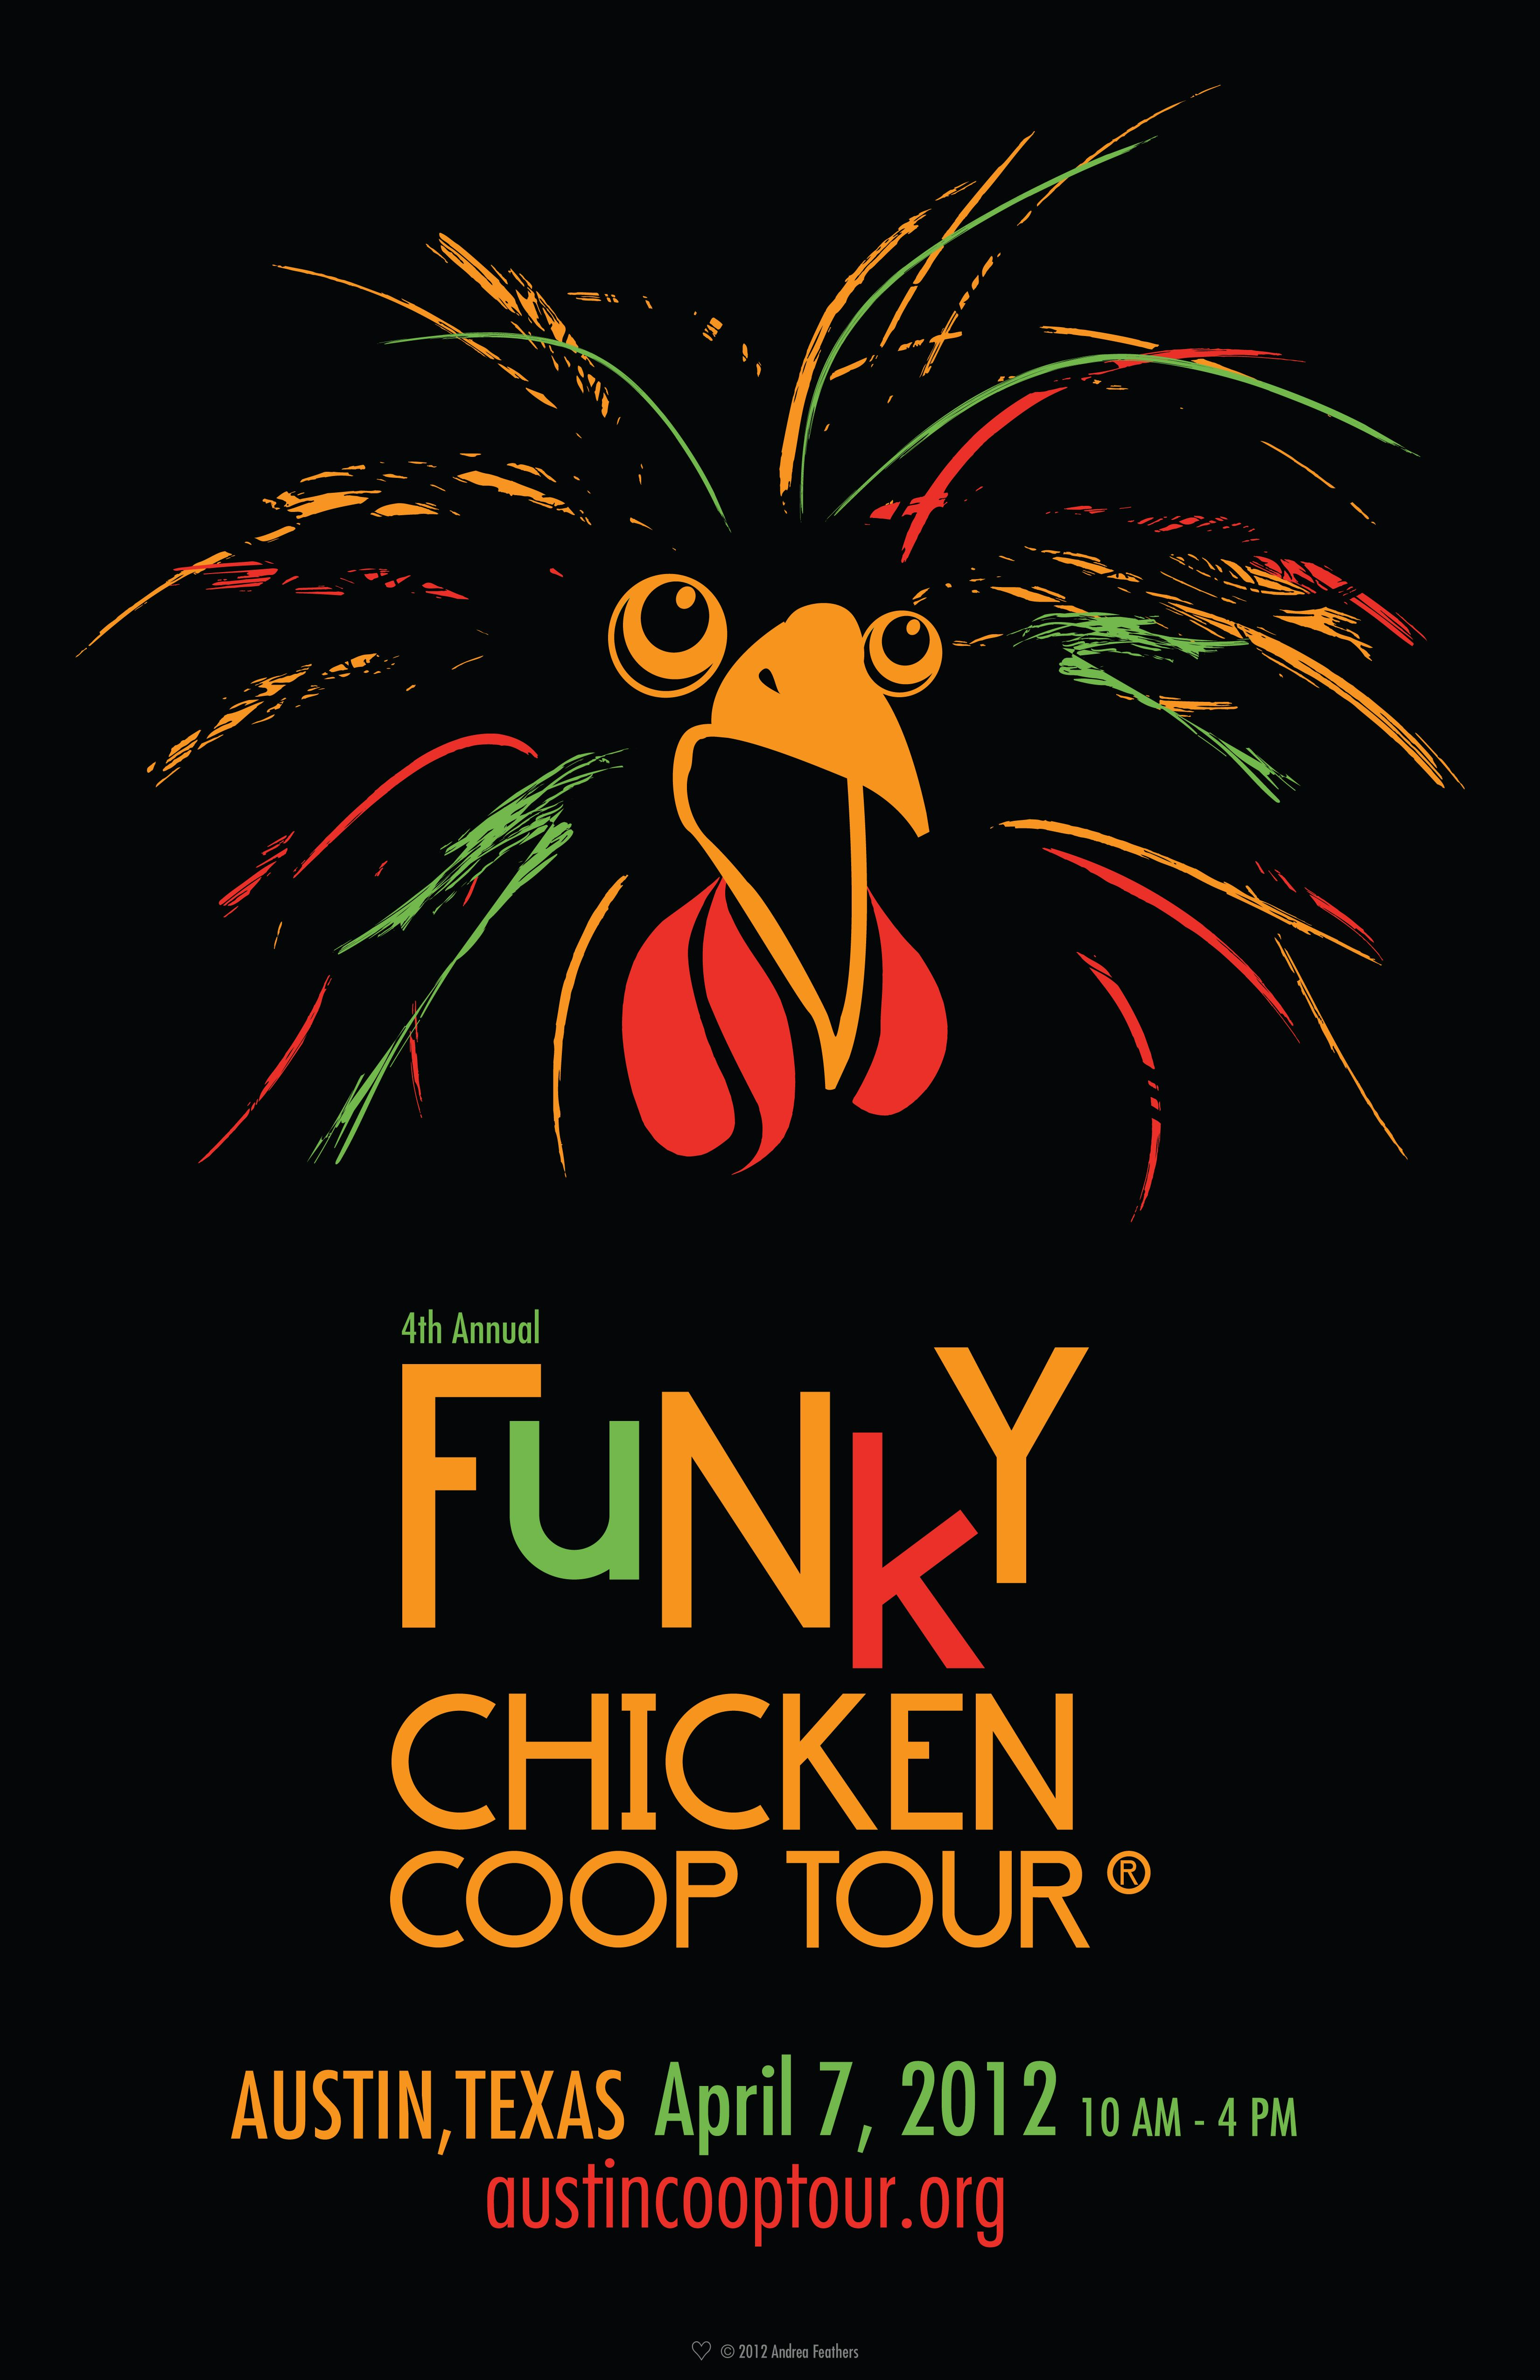 2012 The Funky Chicken Coop Tour Commemorative Poster. Poster art by Andrea Feathers: http://www.andreafeathers.com/